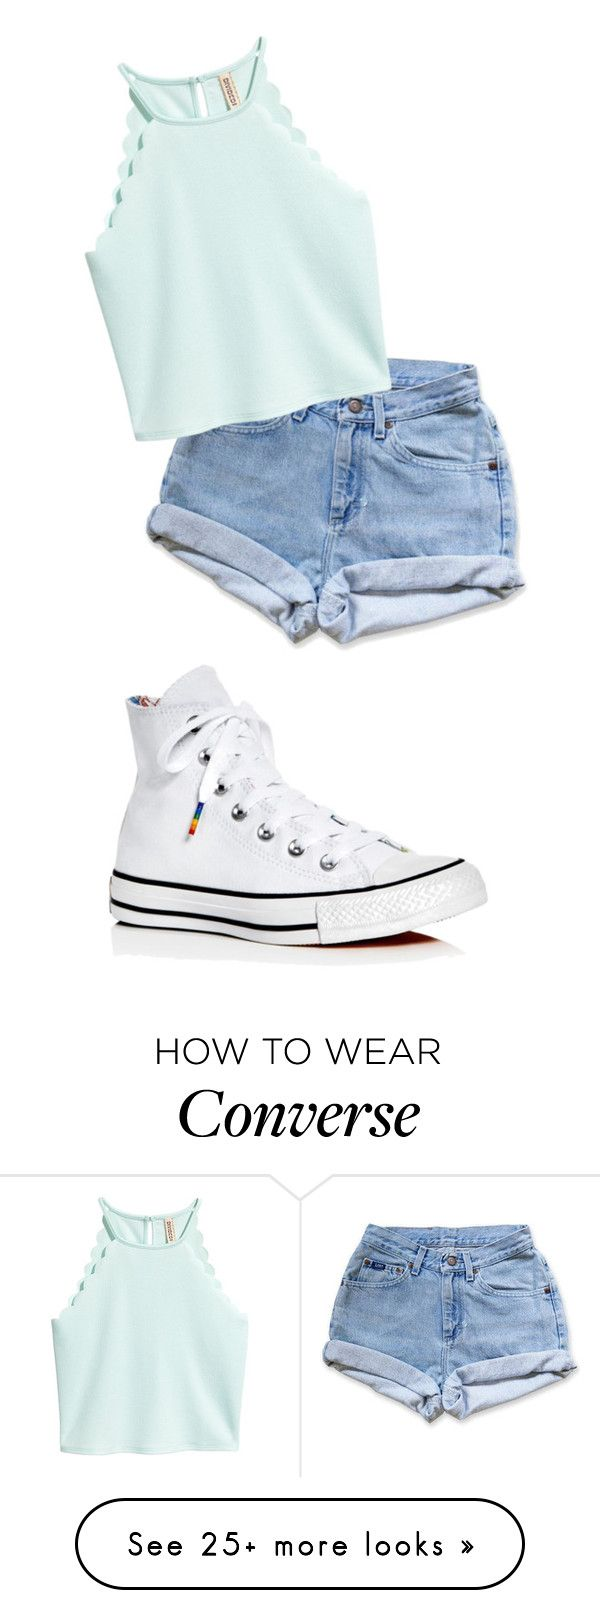 """Untitled #2643"" by vireheart on Polyvore featuring Levi's and Converse"